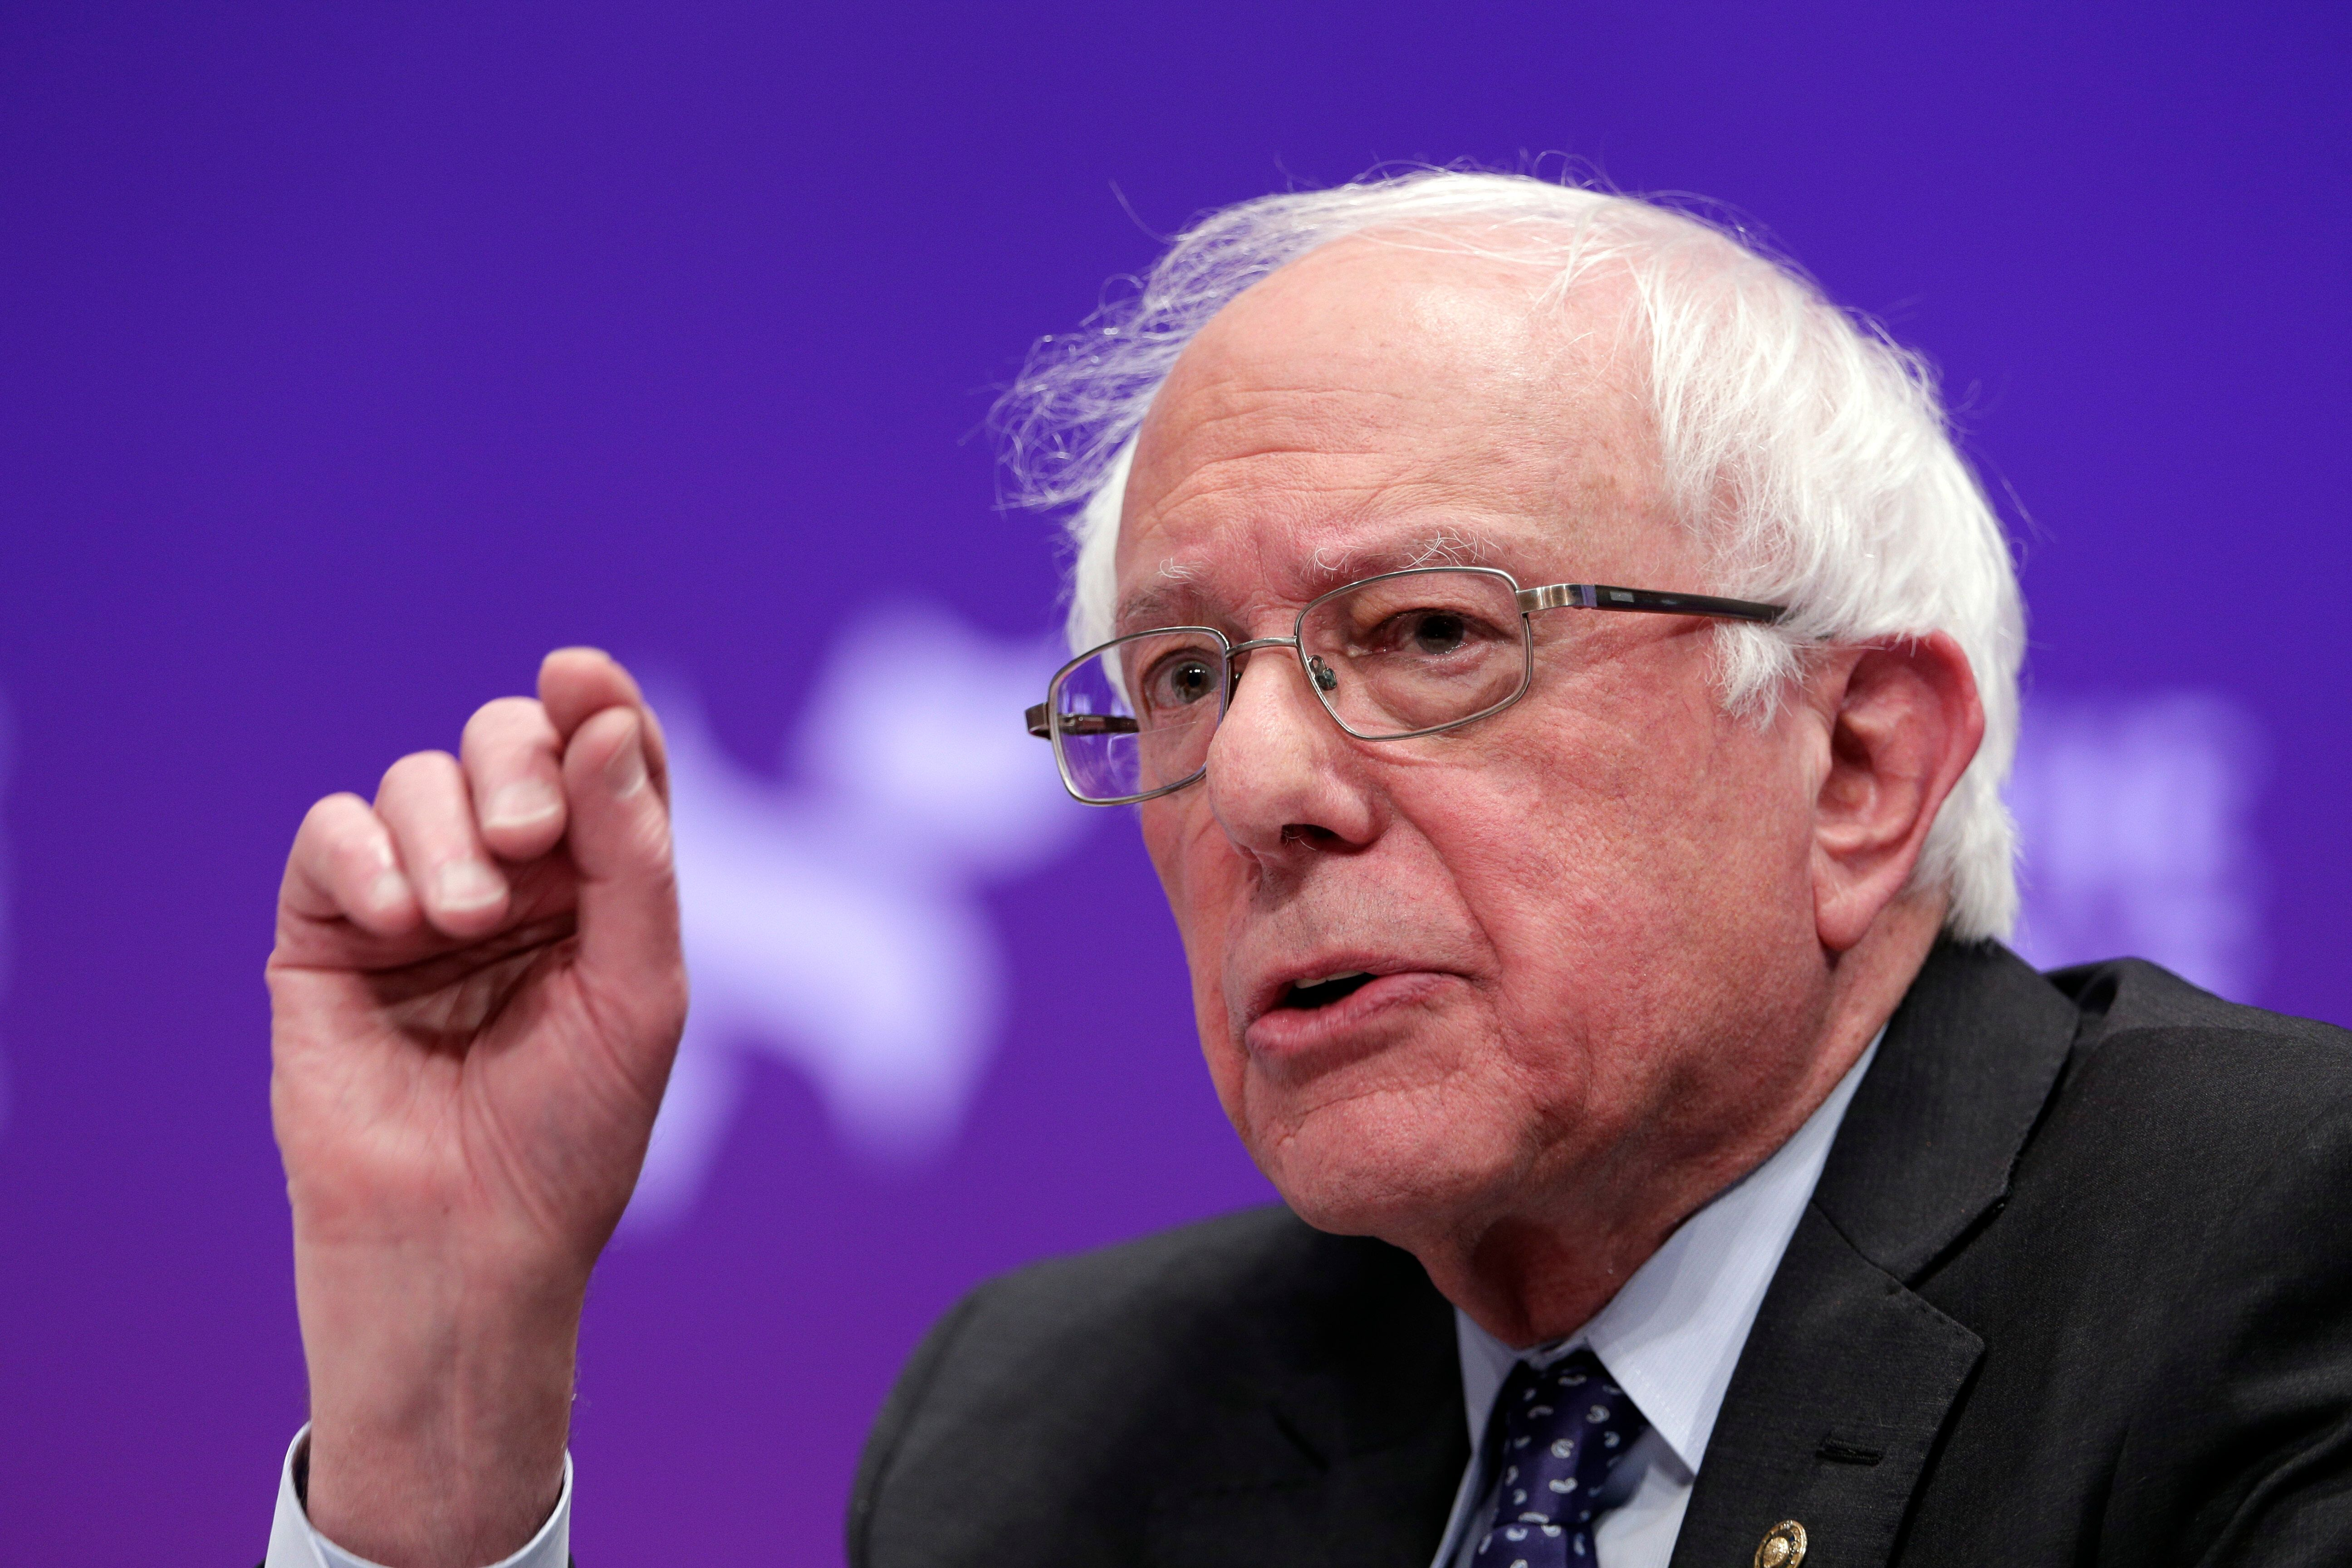 Bernie Sanders Used His Campaign Data To Drive Turnout On Strike Picket Lines